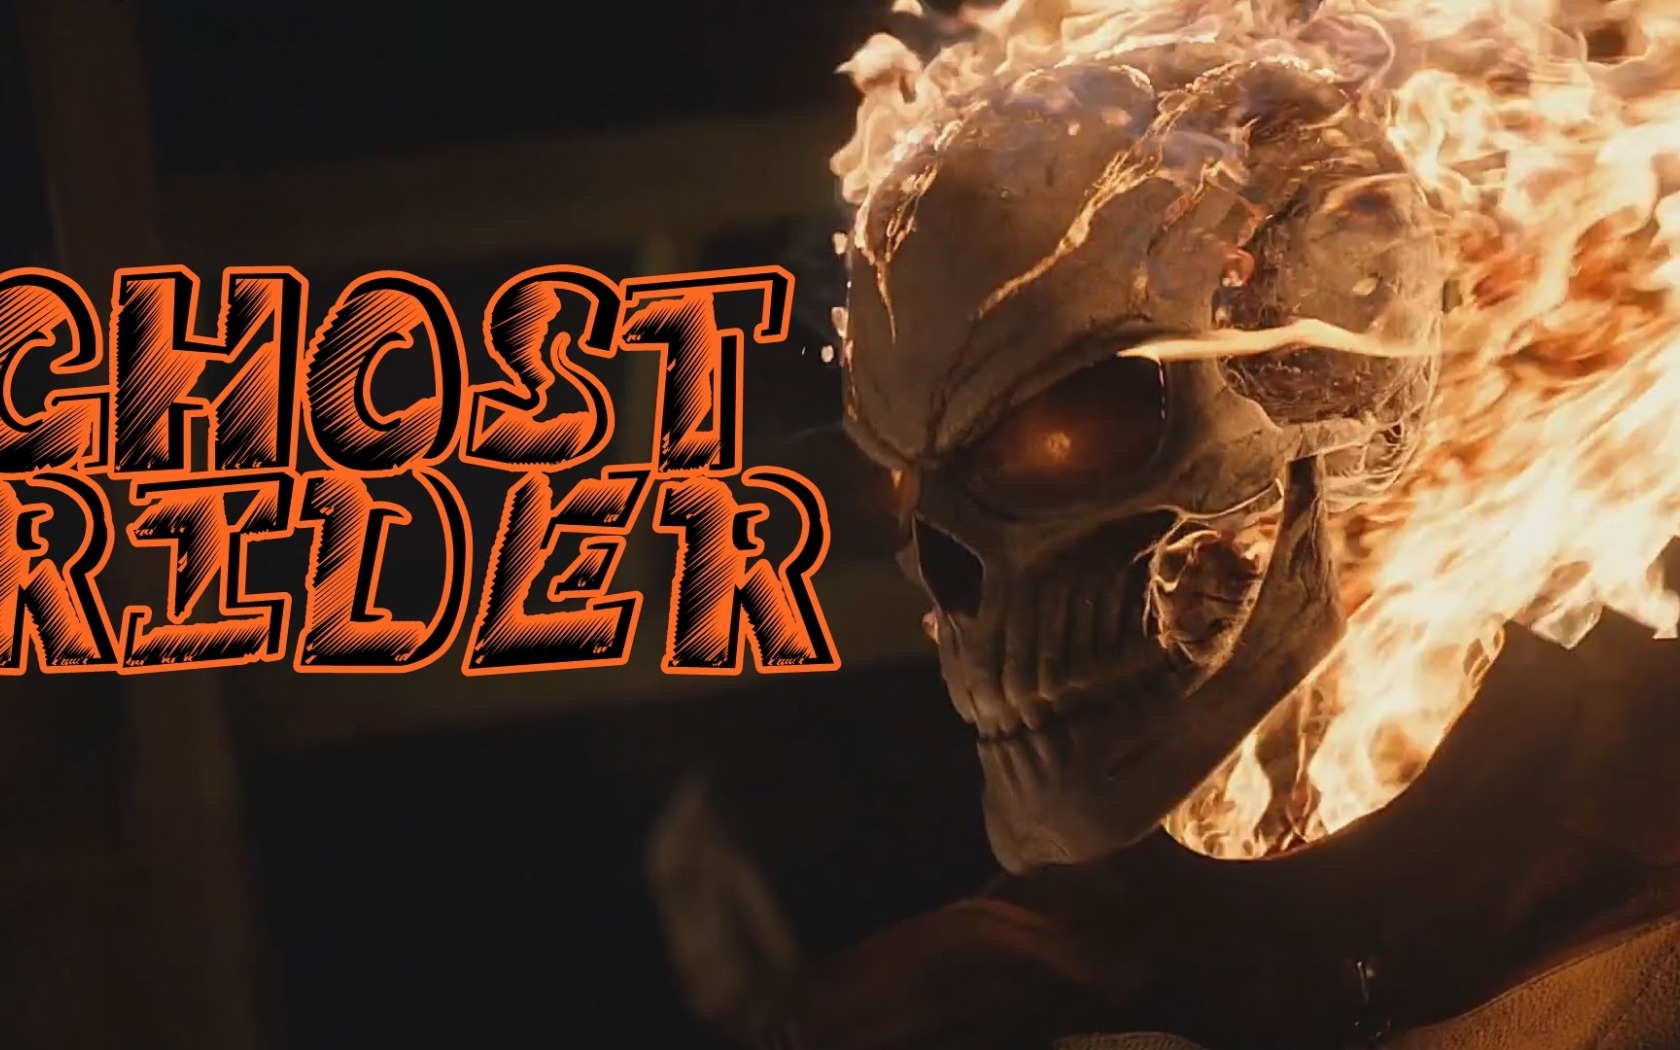 Free Download Ghost Rider Agents Of Shield Edited Music 1920x1080